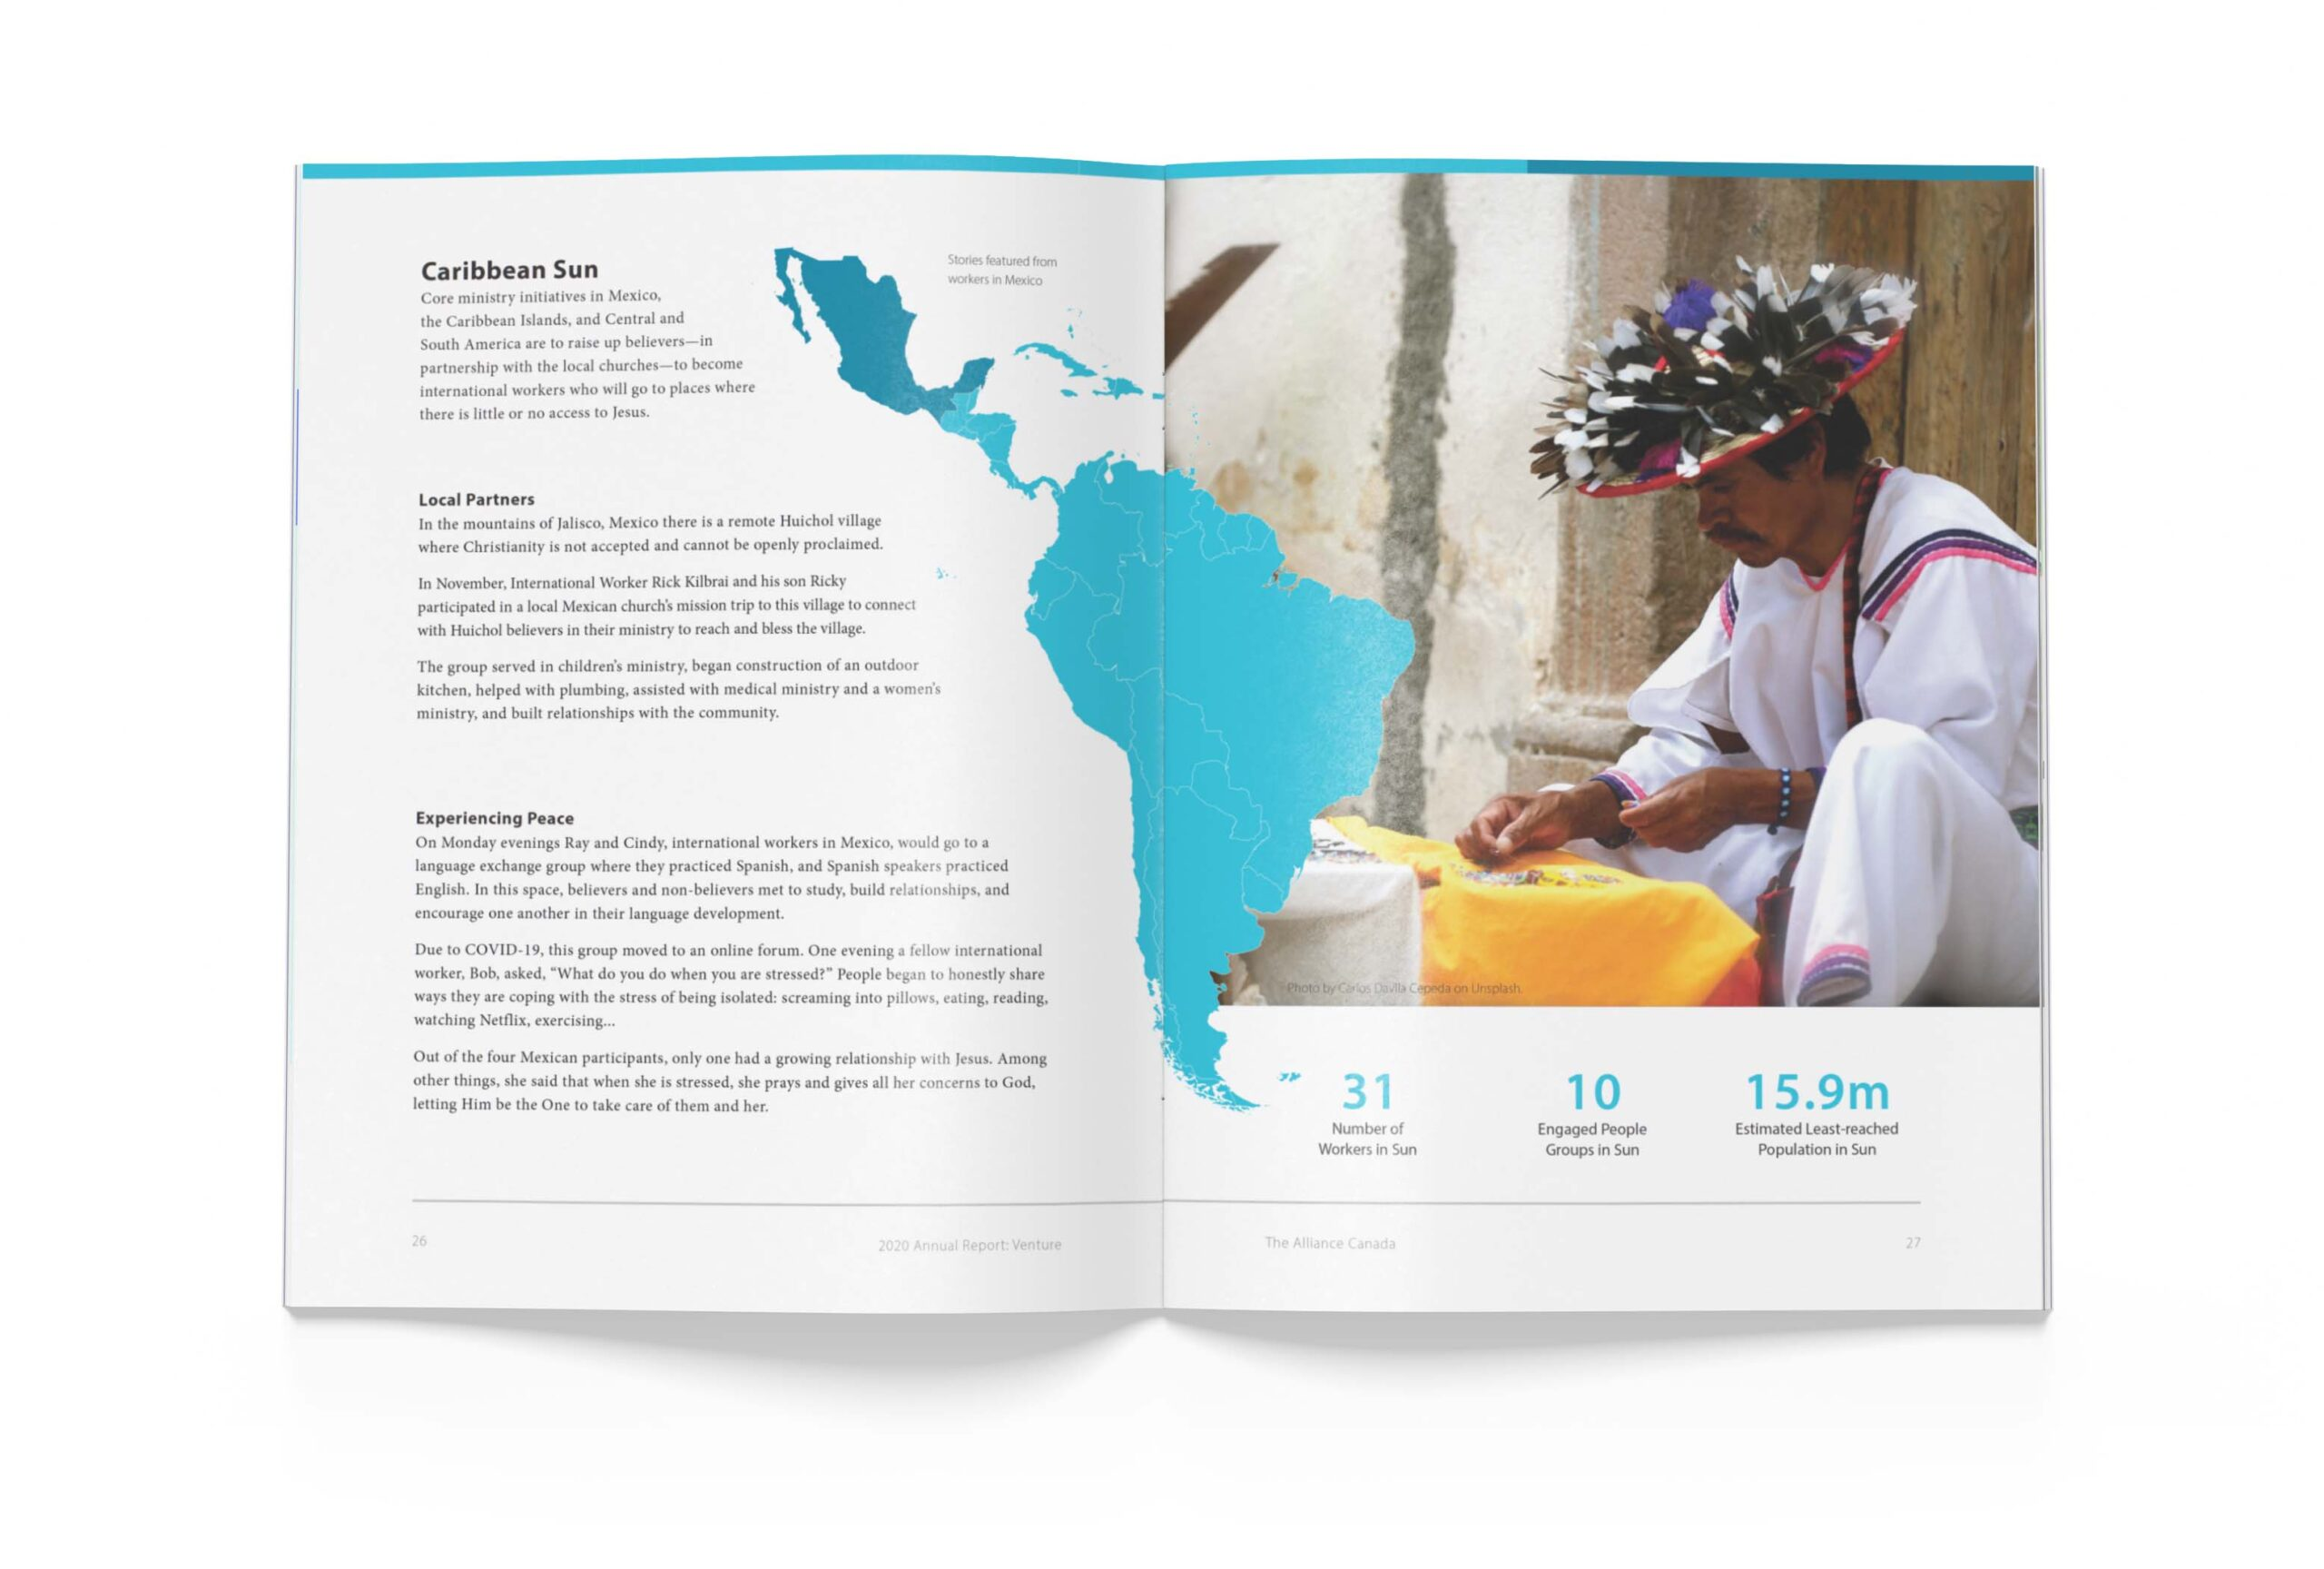 Page 26 of The Alliance Canada 2020 Annual Report